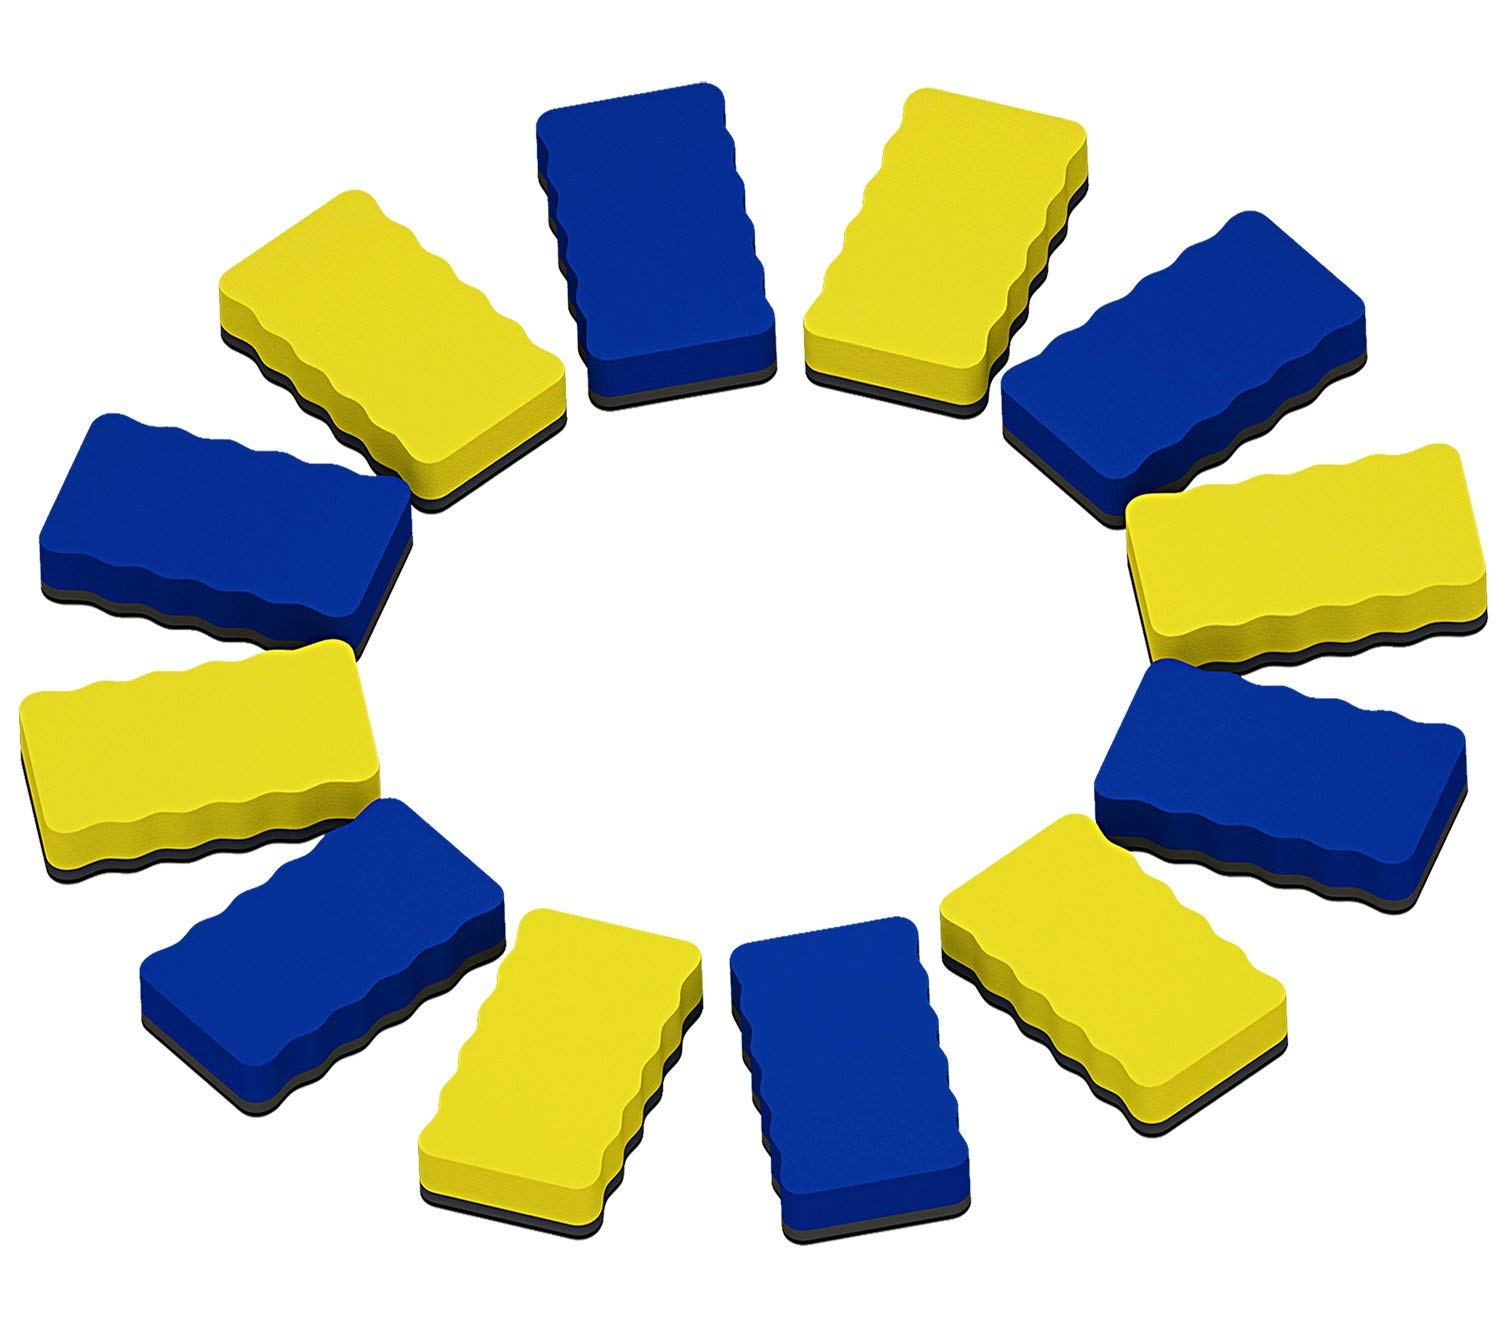 Attmu Magnetic Whiteboard Dry Erasers, 12 Pack - 6 Blue and 6 Yellow, 2.2 x 4 Inches Each by Attmu (Image #1)